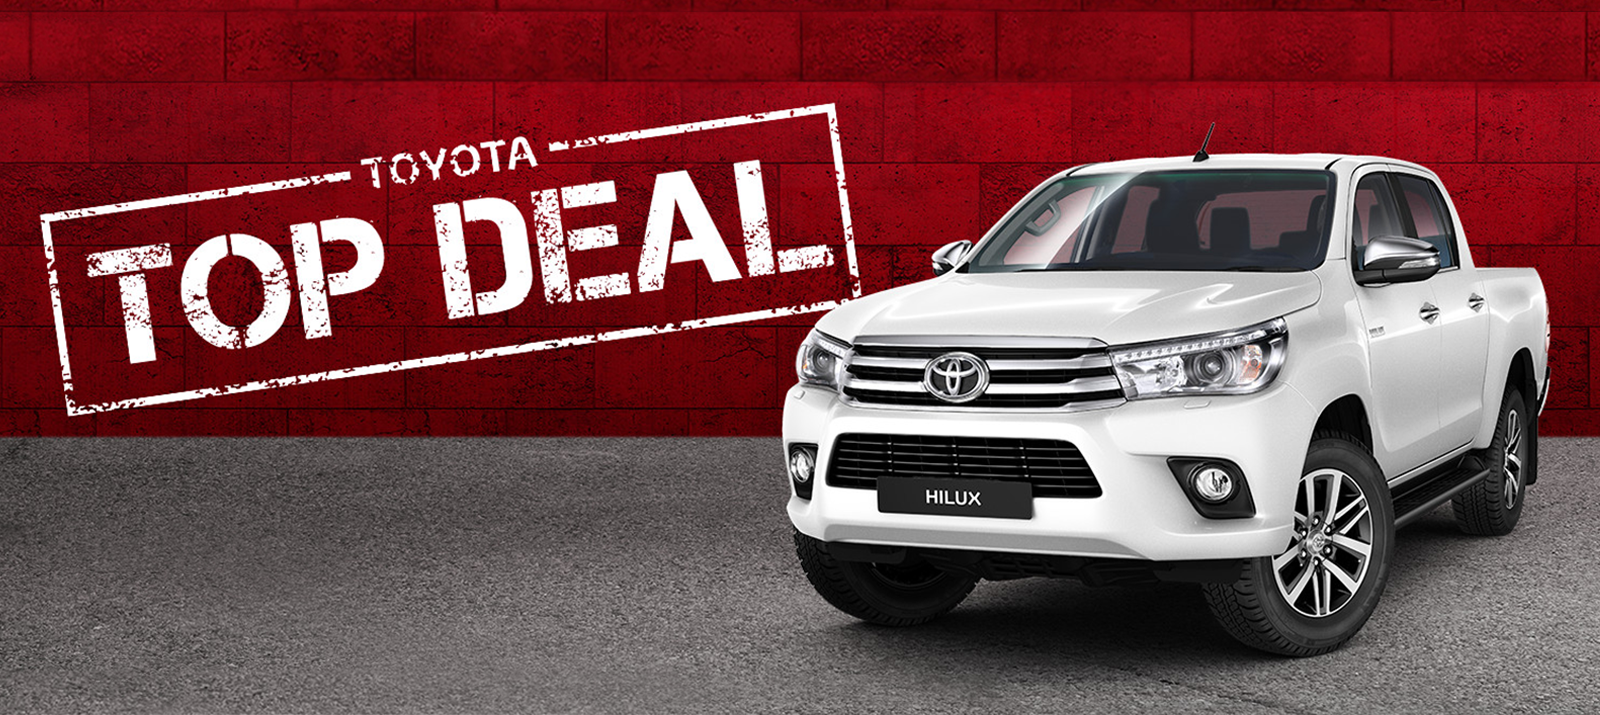 TOP DEAL HiLux